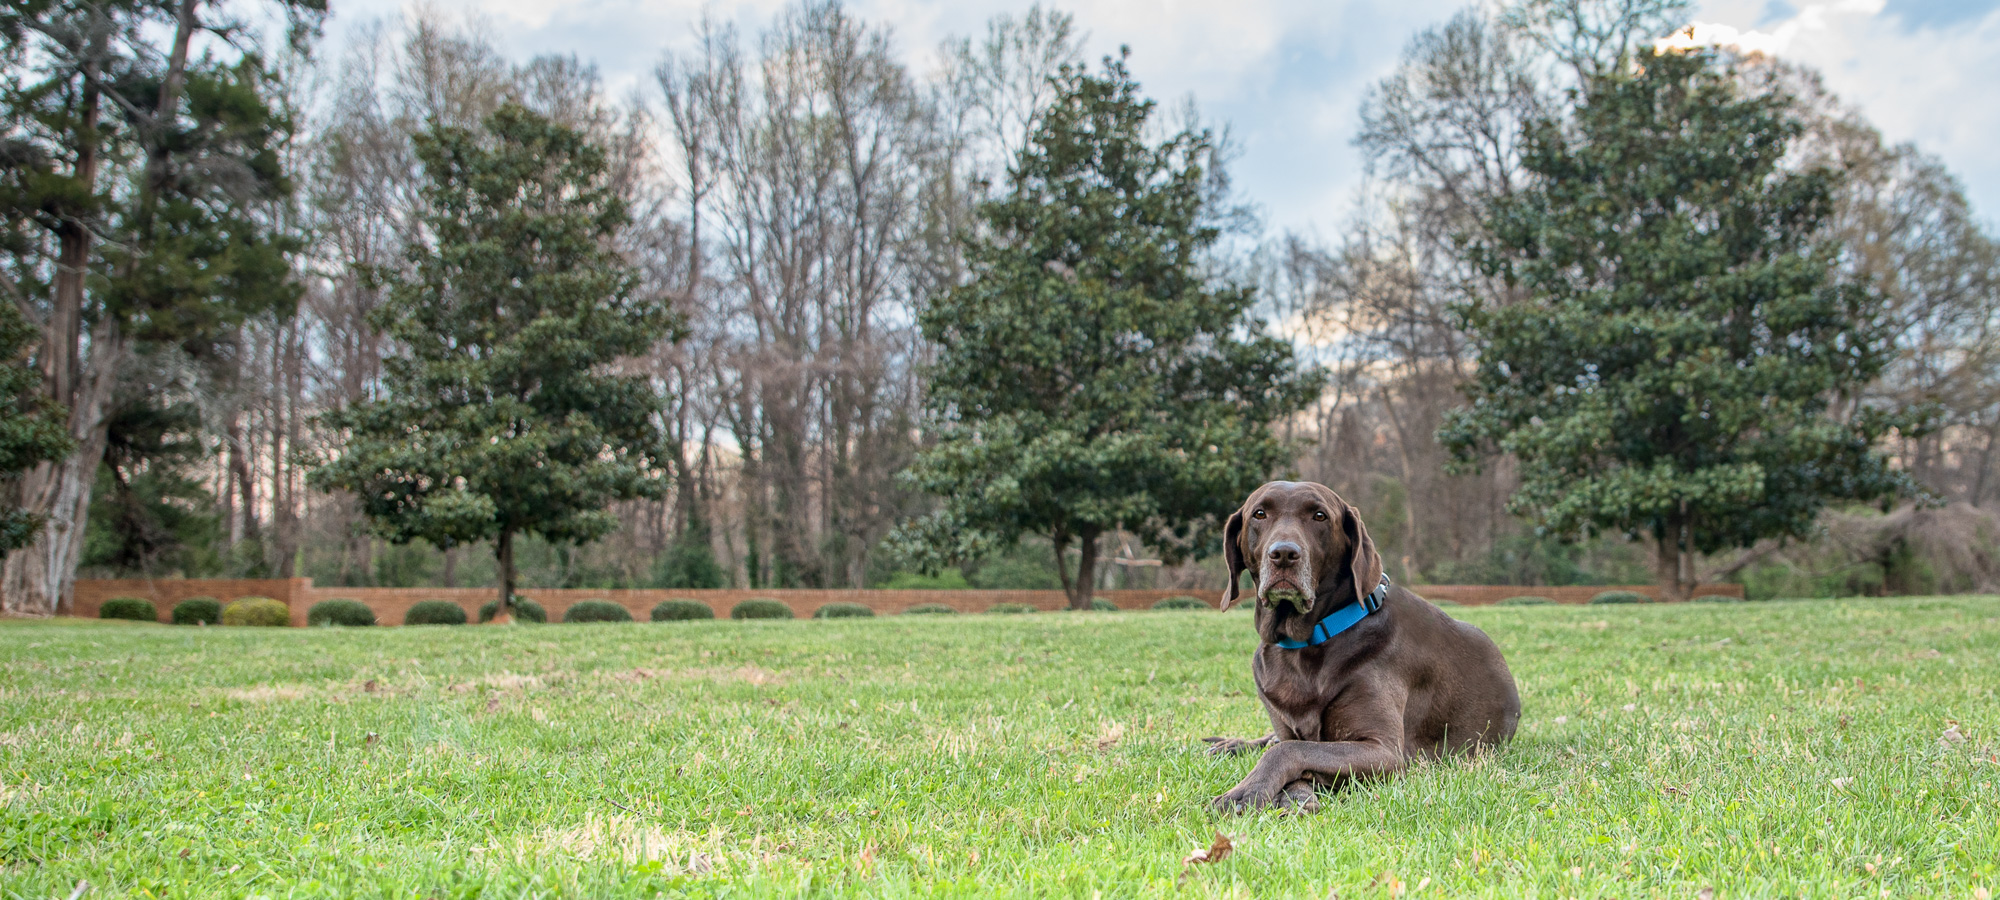 pet and dog photography near me